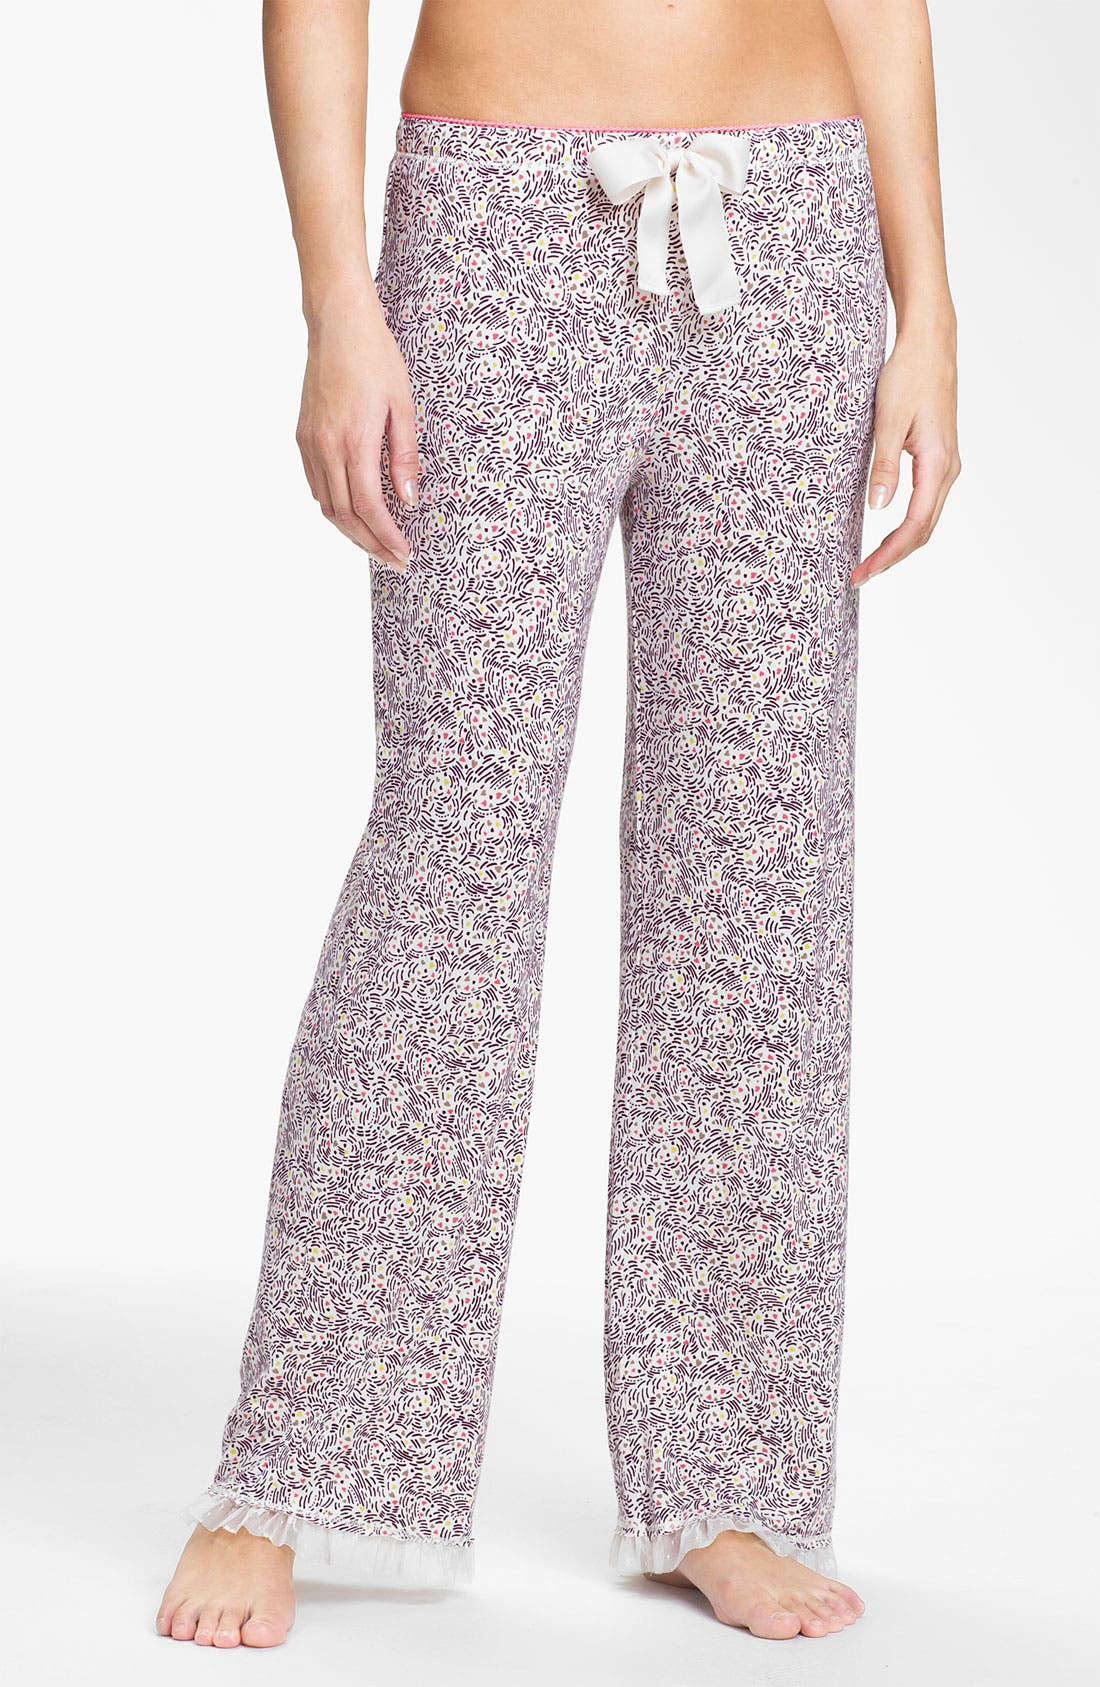 Alternate Image 1 Selected - Kensie 'Starry Eyes' Lounge Pants